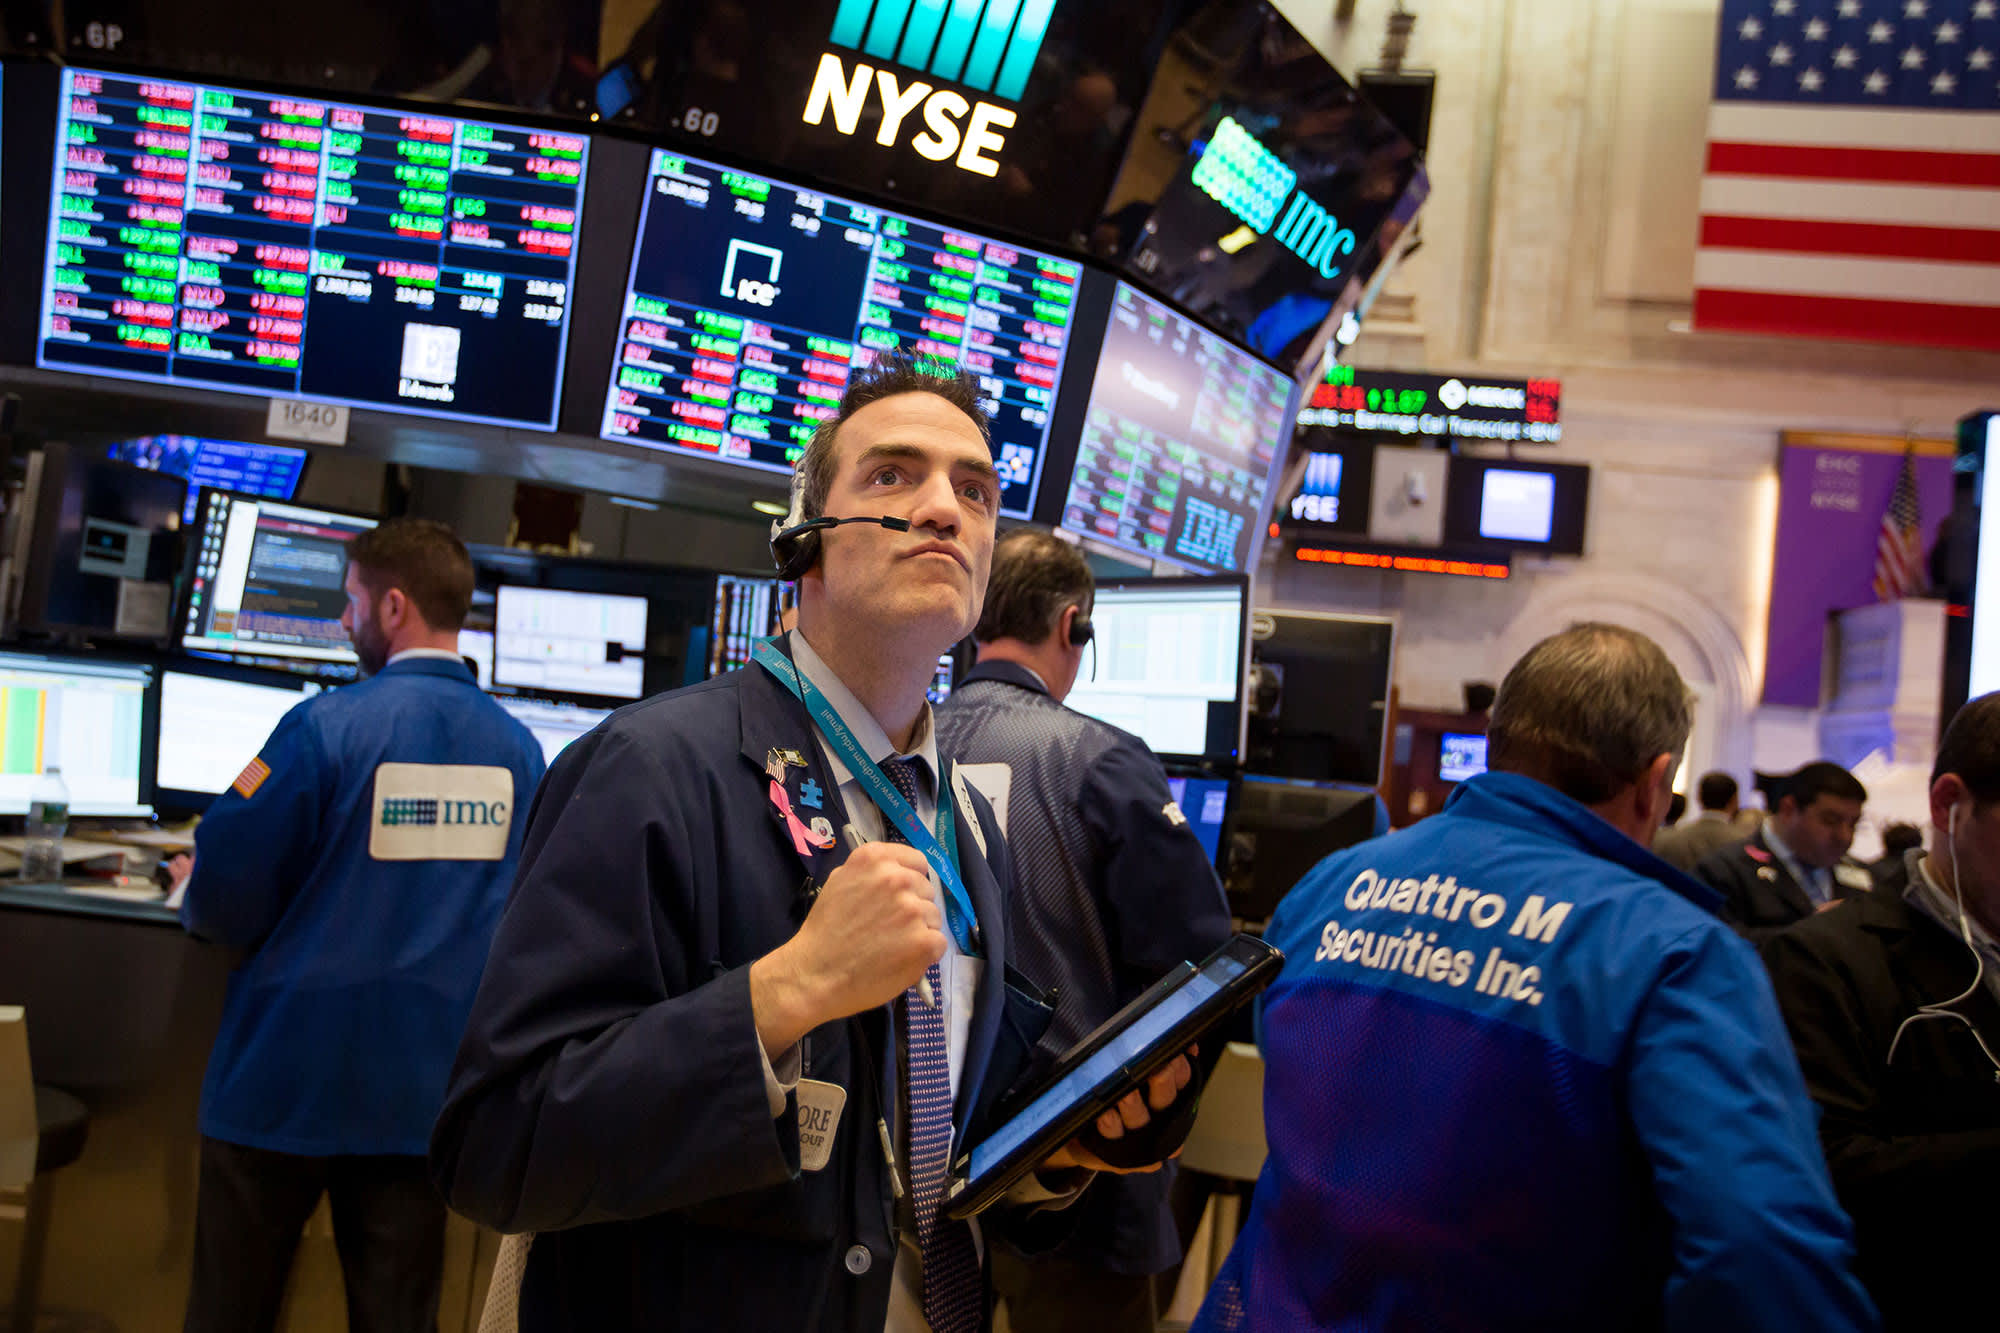 Dow jumps more than 200 points, closes above 27,000 for the first time since July